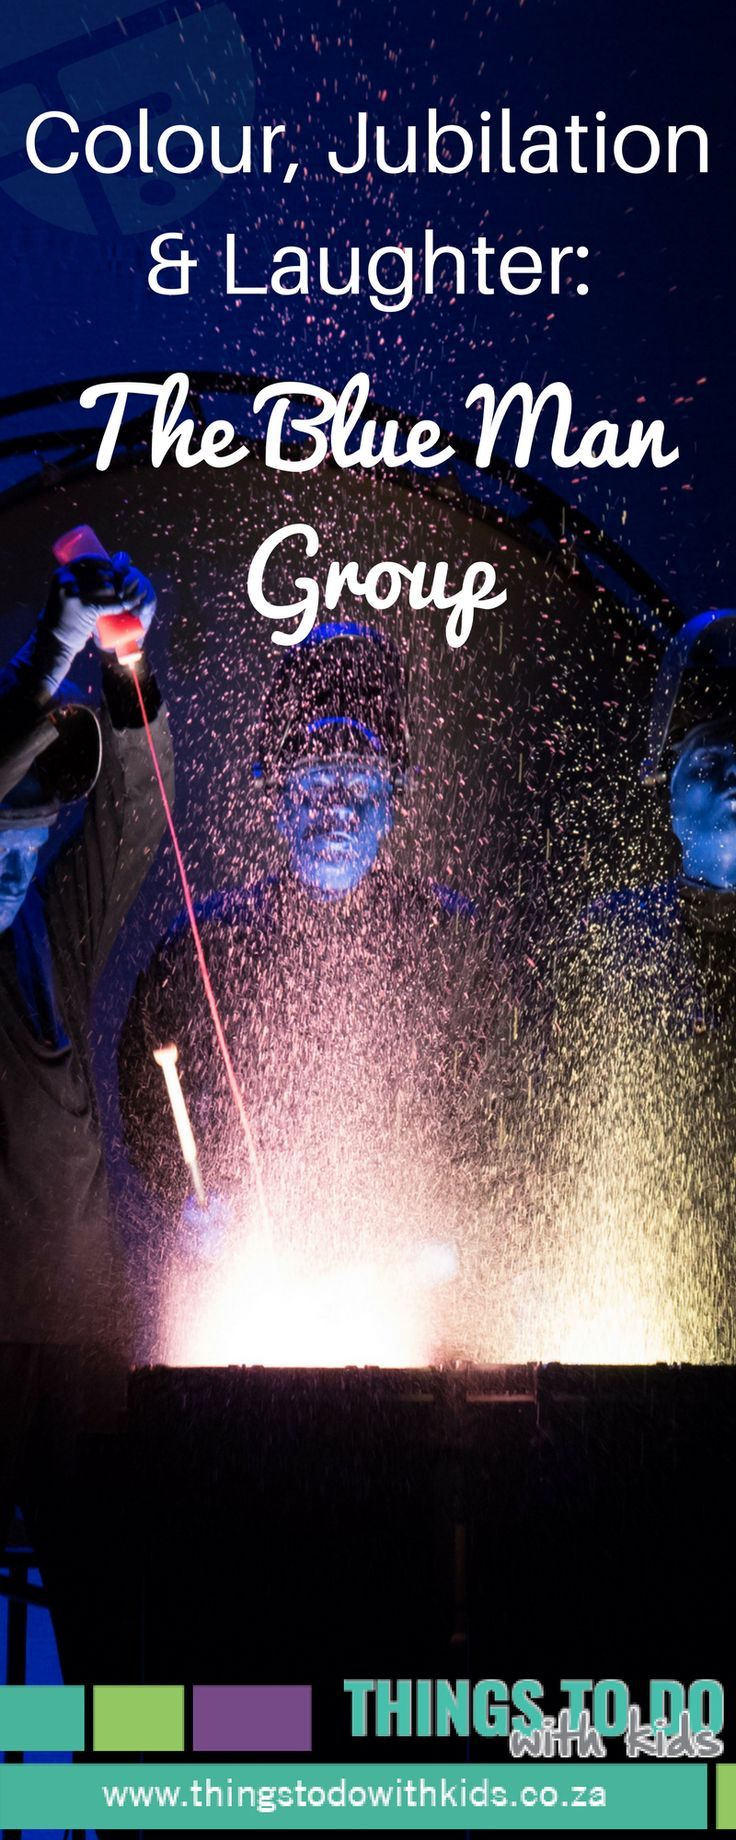 Review of The Blue Man Group | Excursions & Activities with Kids | Family-friendly shows | Live performance | Comedy, music concert & pantomime